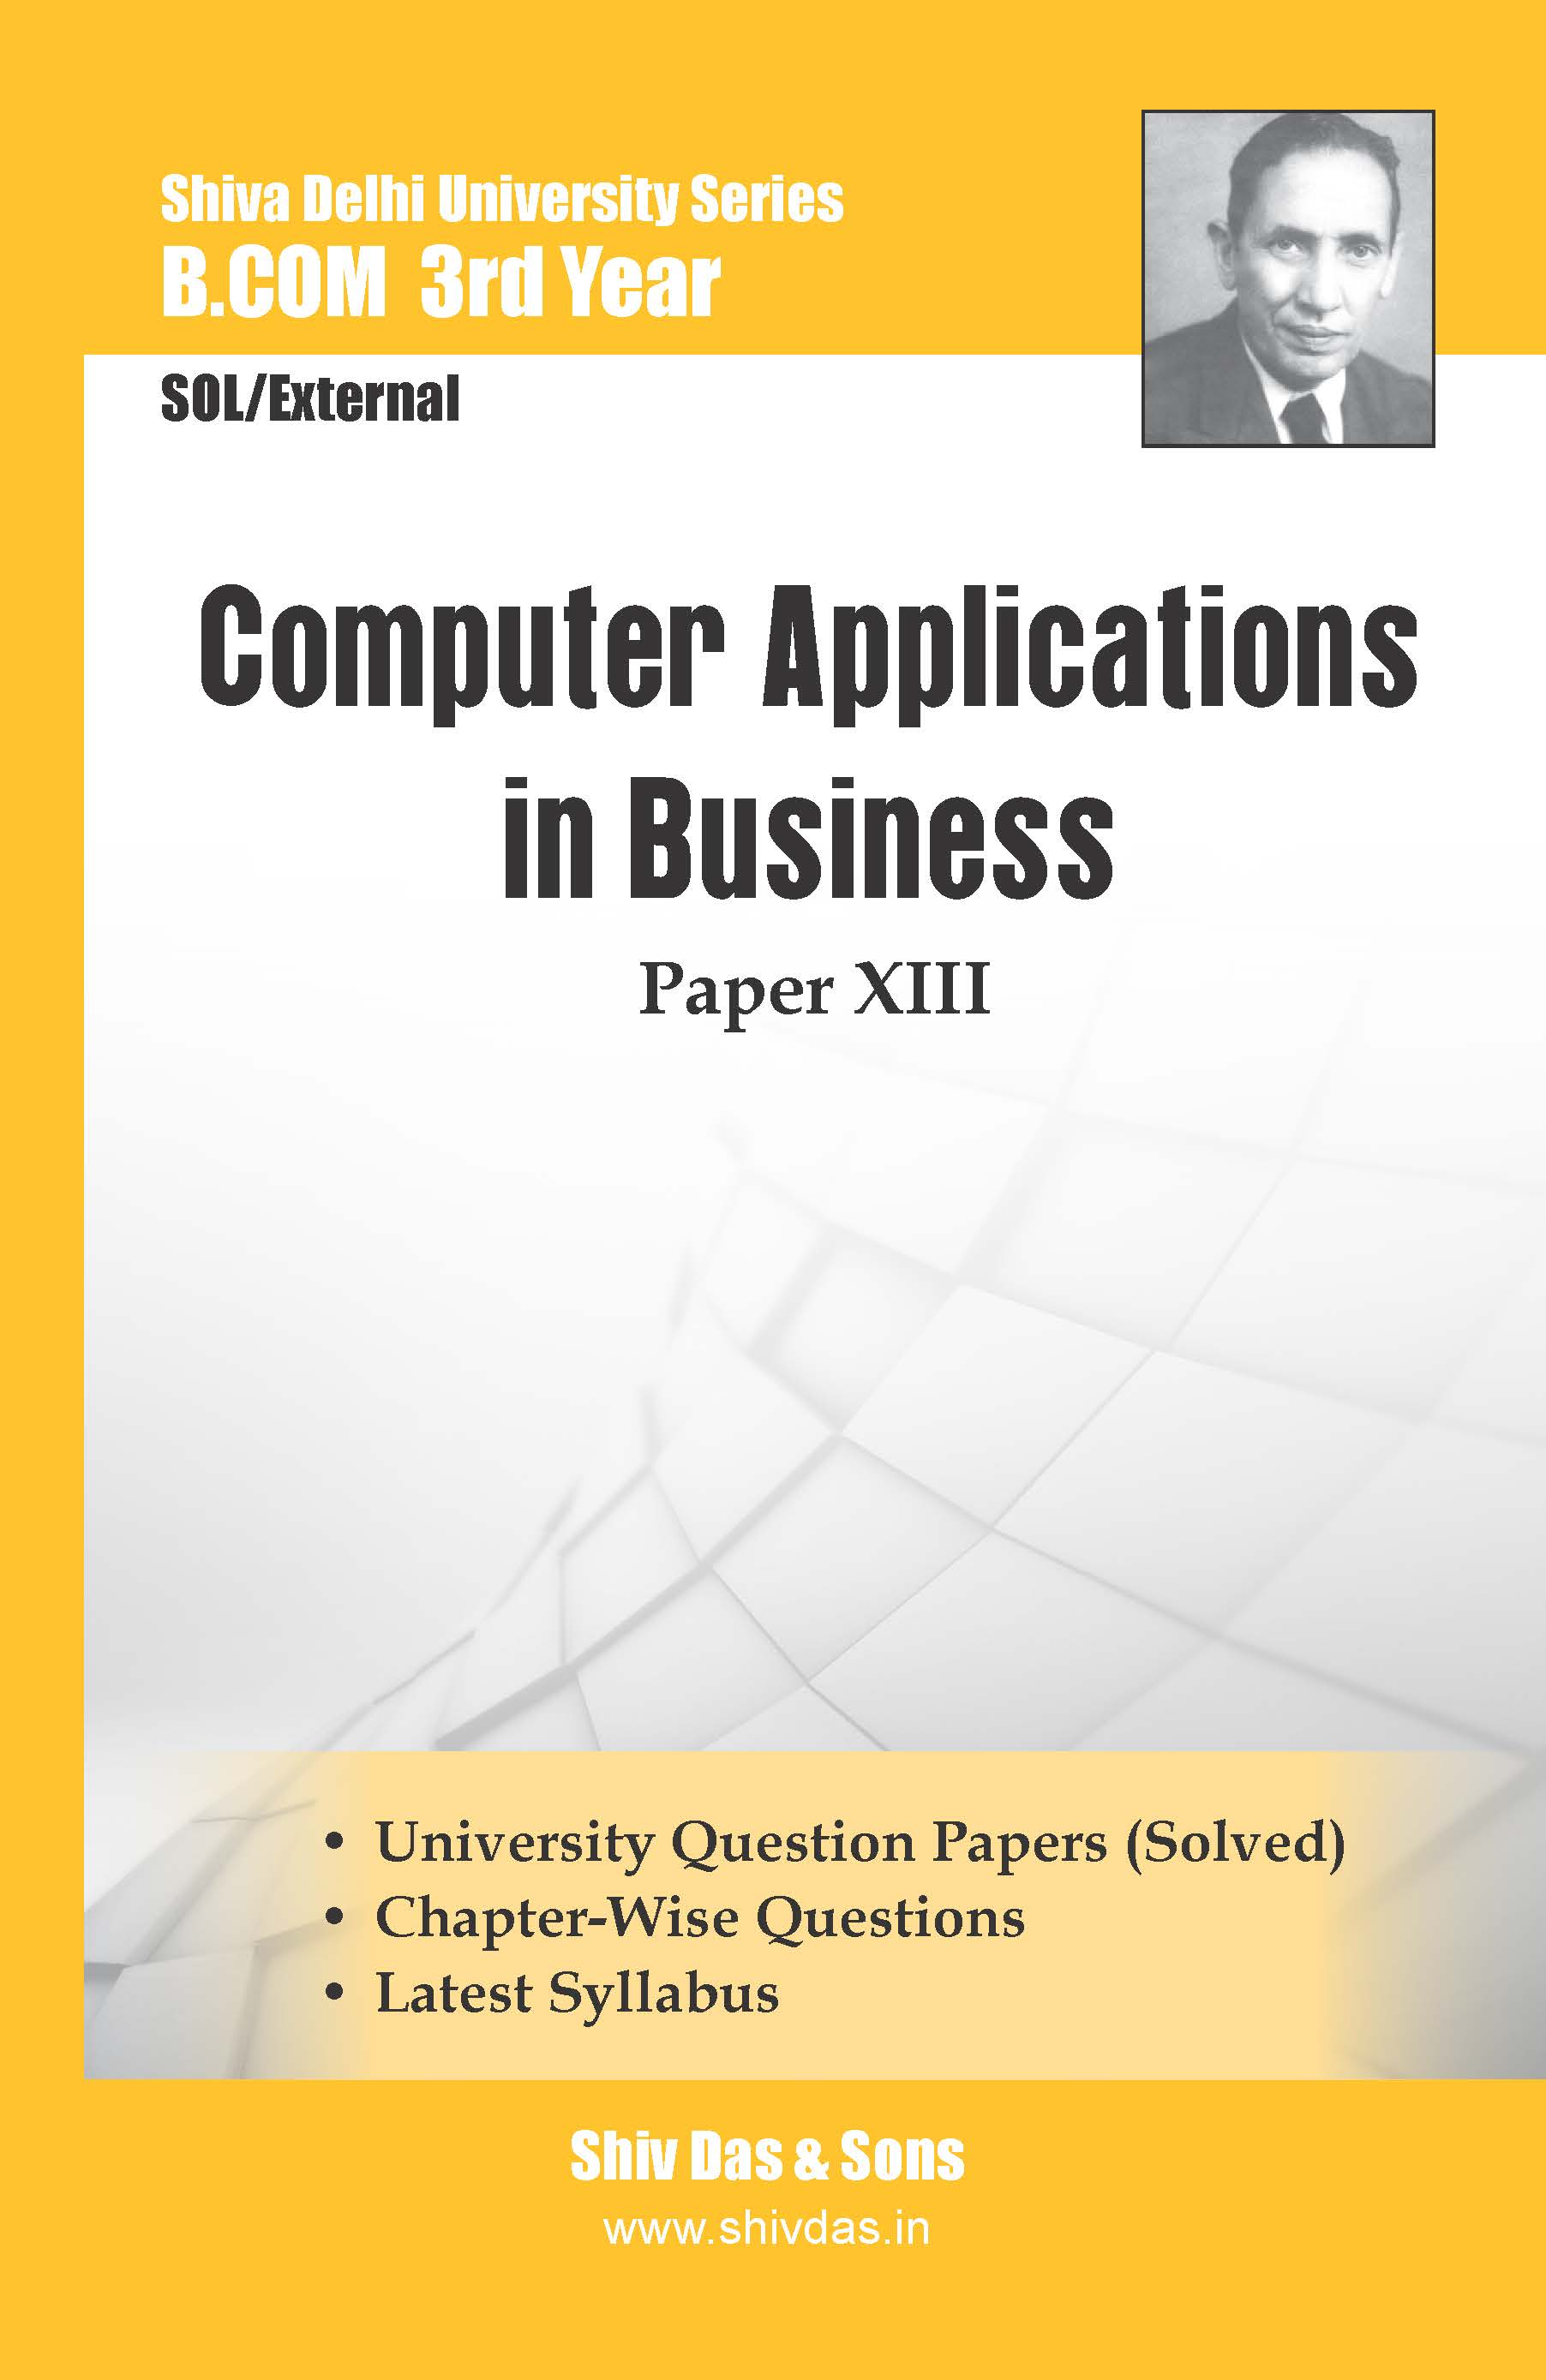 B.Com-3rd Year-SOL/External-Computer Applications in Business-Shiv Das-Delhi University Series